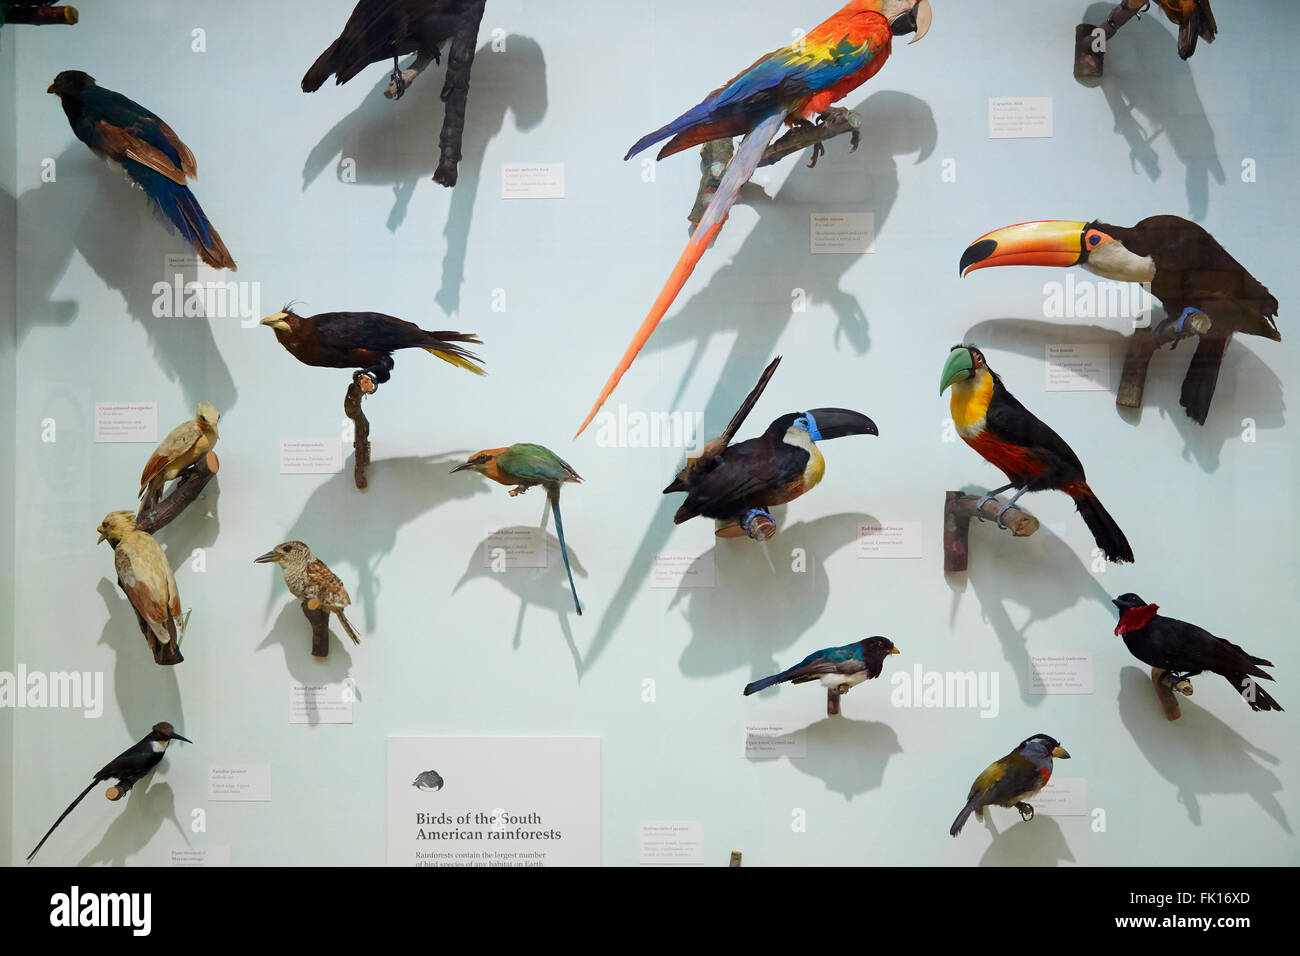 Natural History Museum stuffed South American rain forest birds collection in London - Stock Image